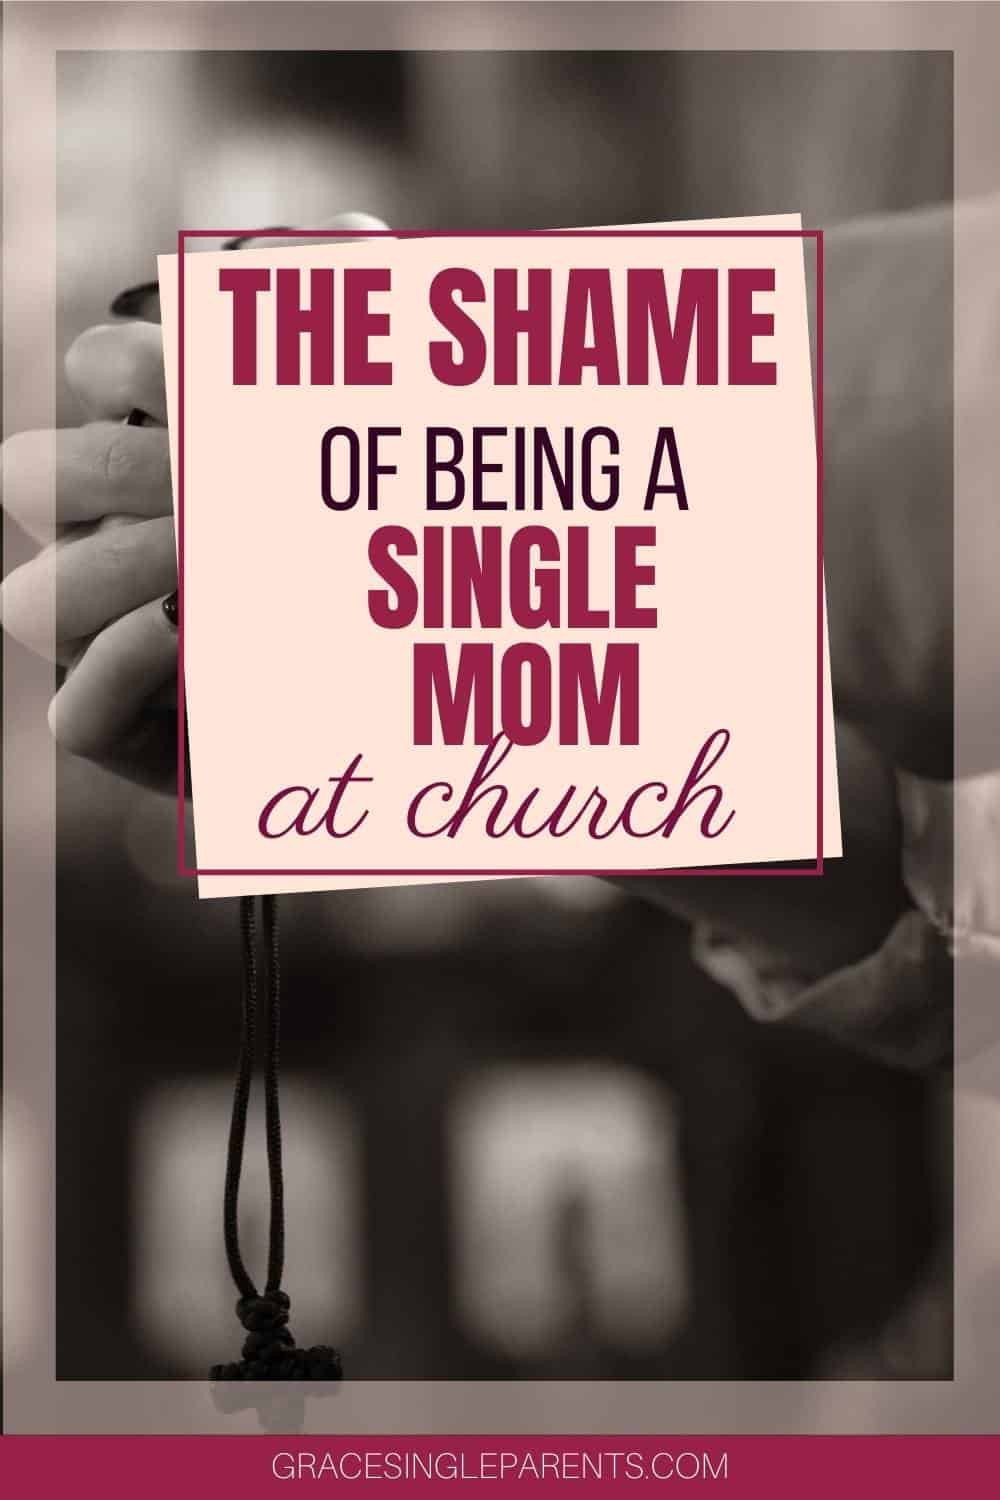 The Shame of Being a Single Mom in the Church